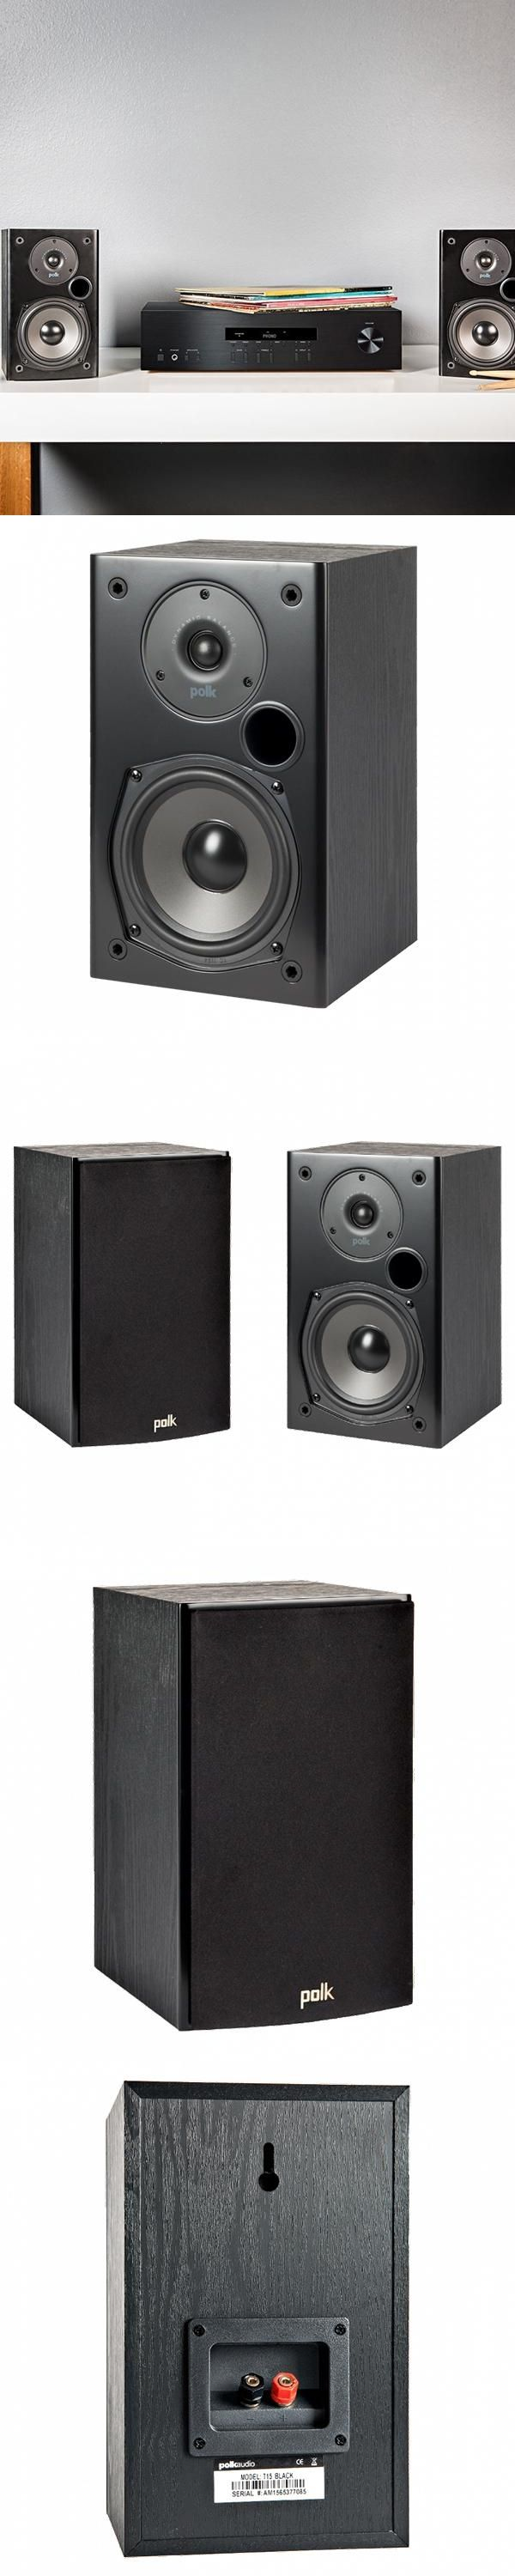 Polk T15 Bookshelf Speakers Black